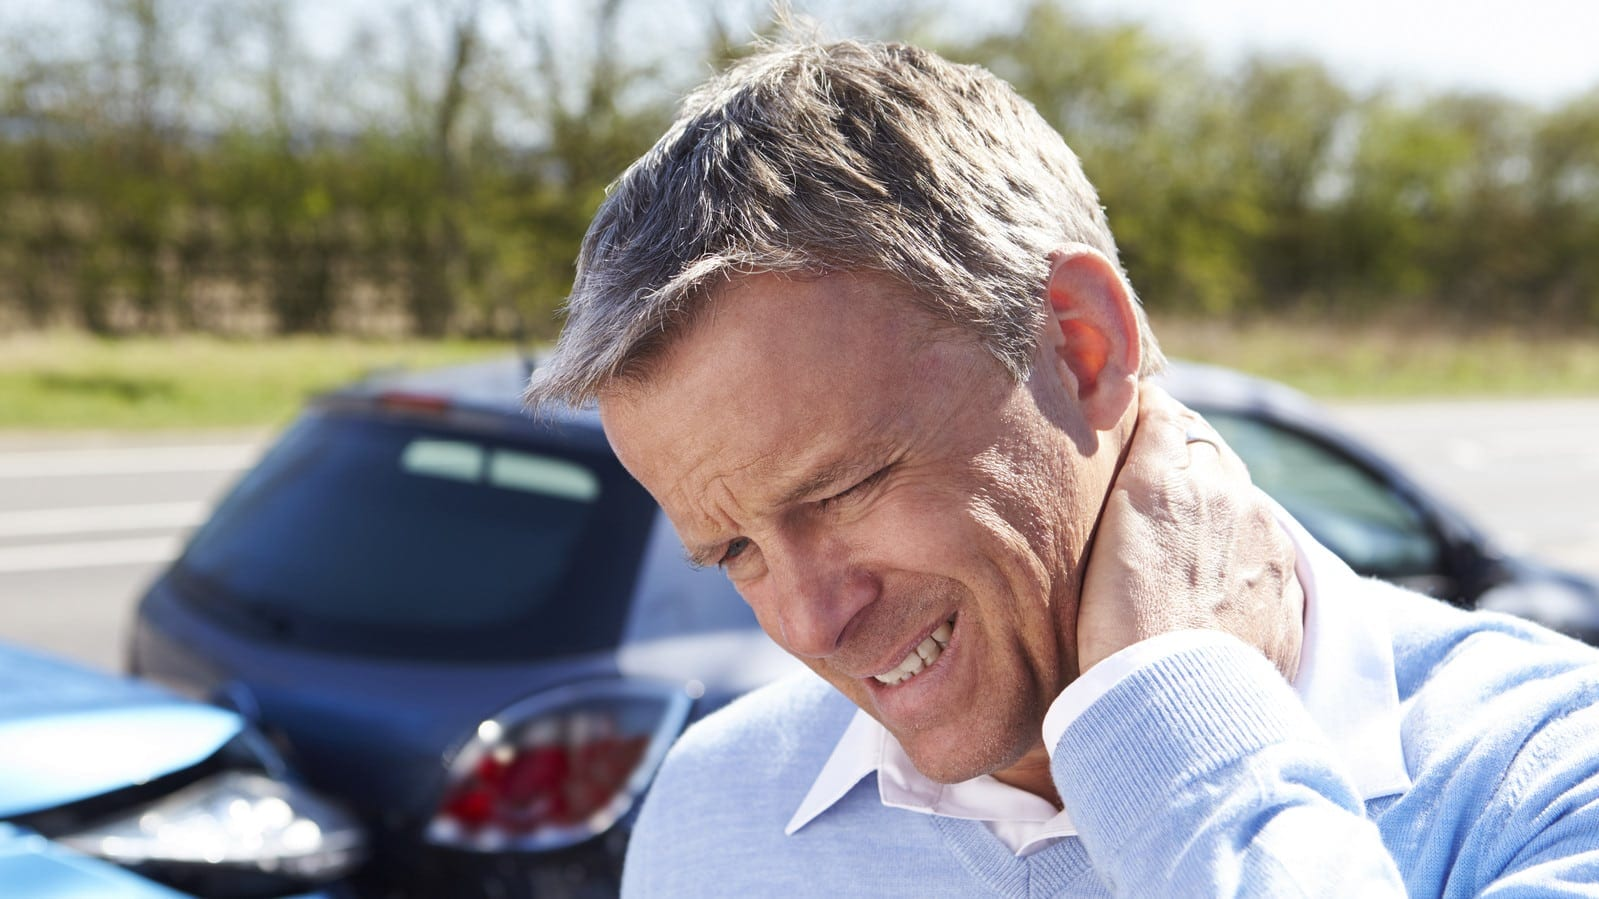 Man With Neck Injury After Car Accident Stock Photo